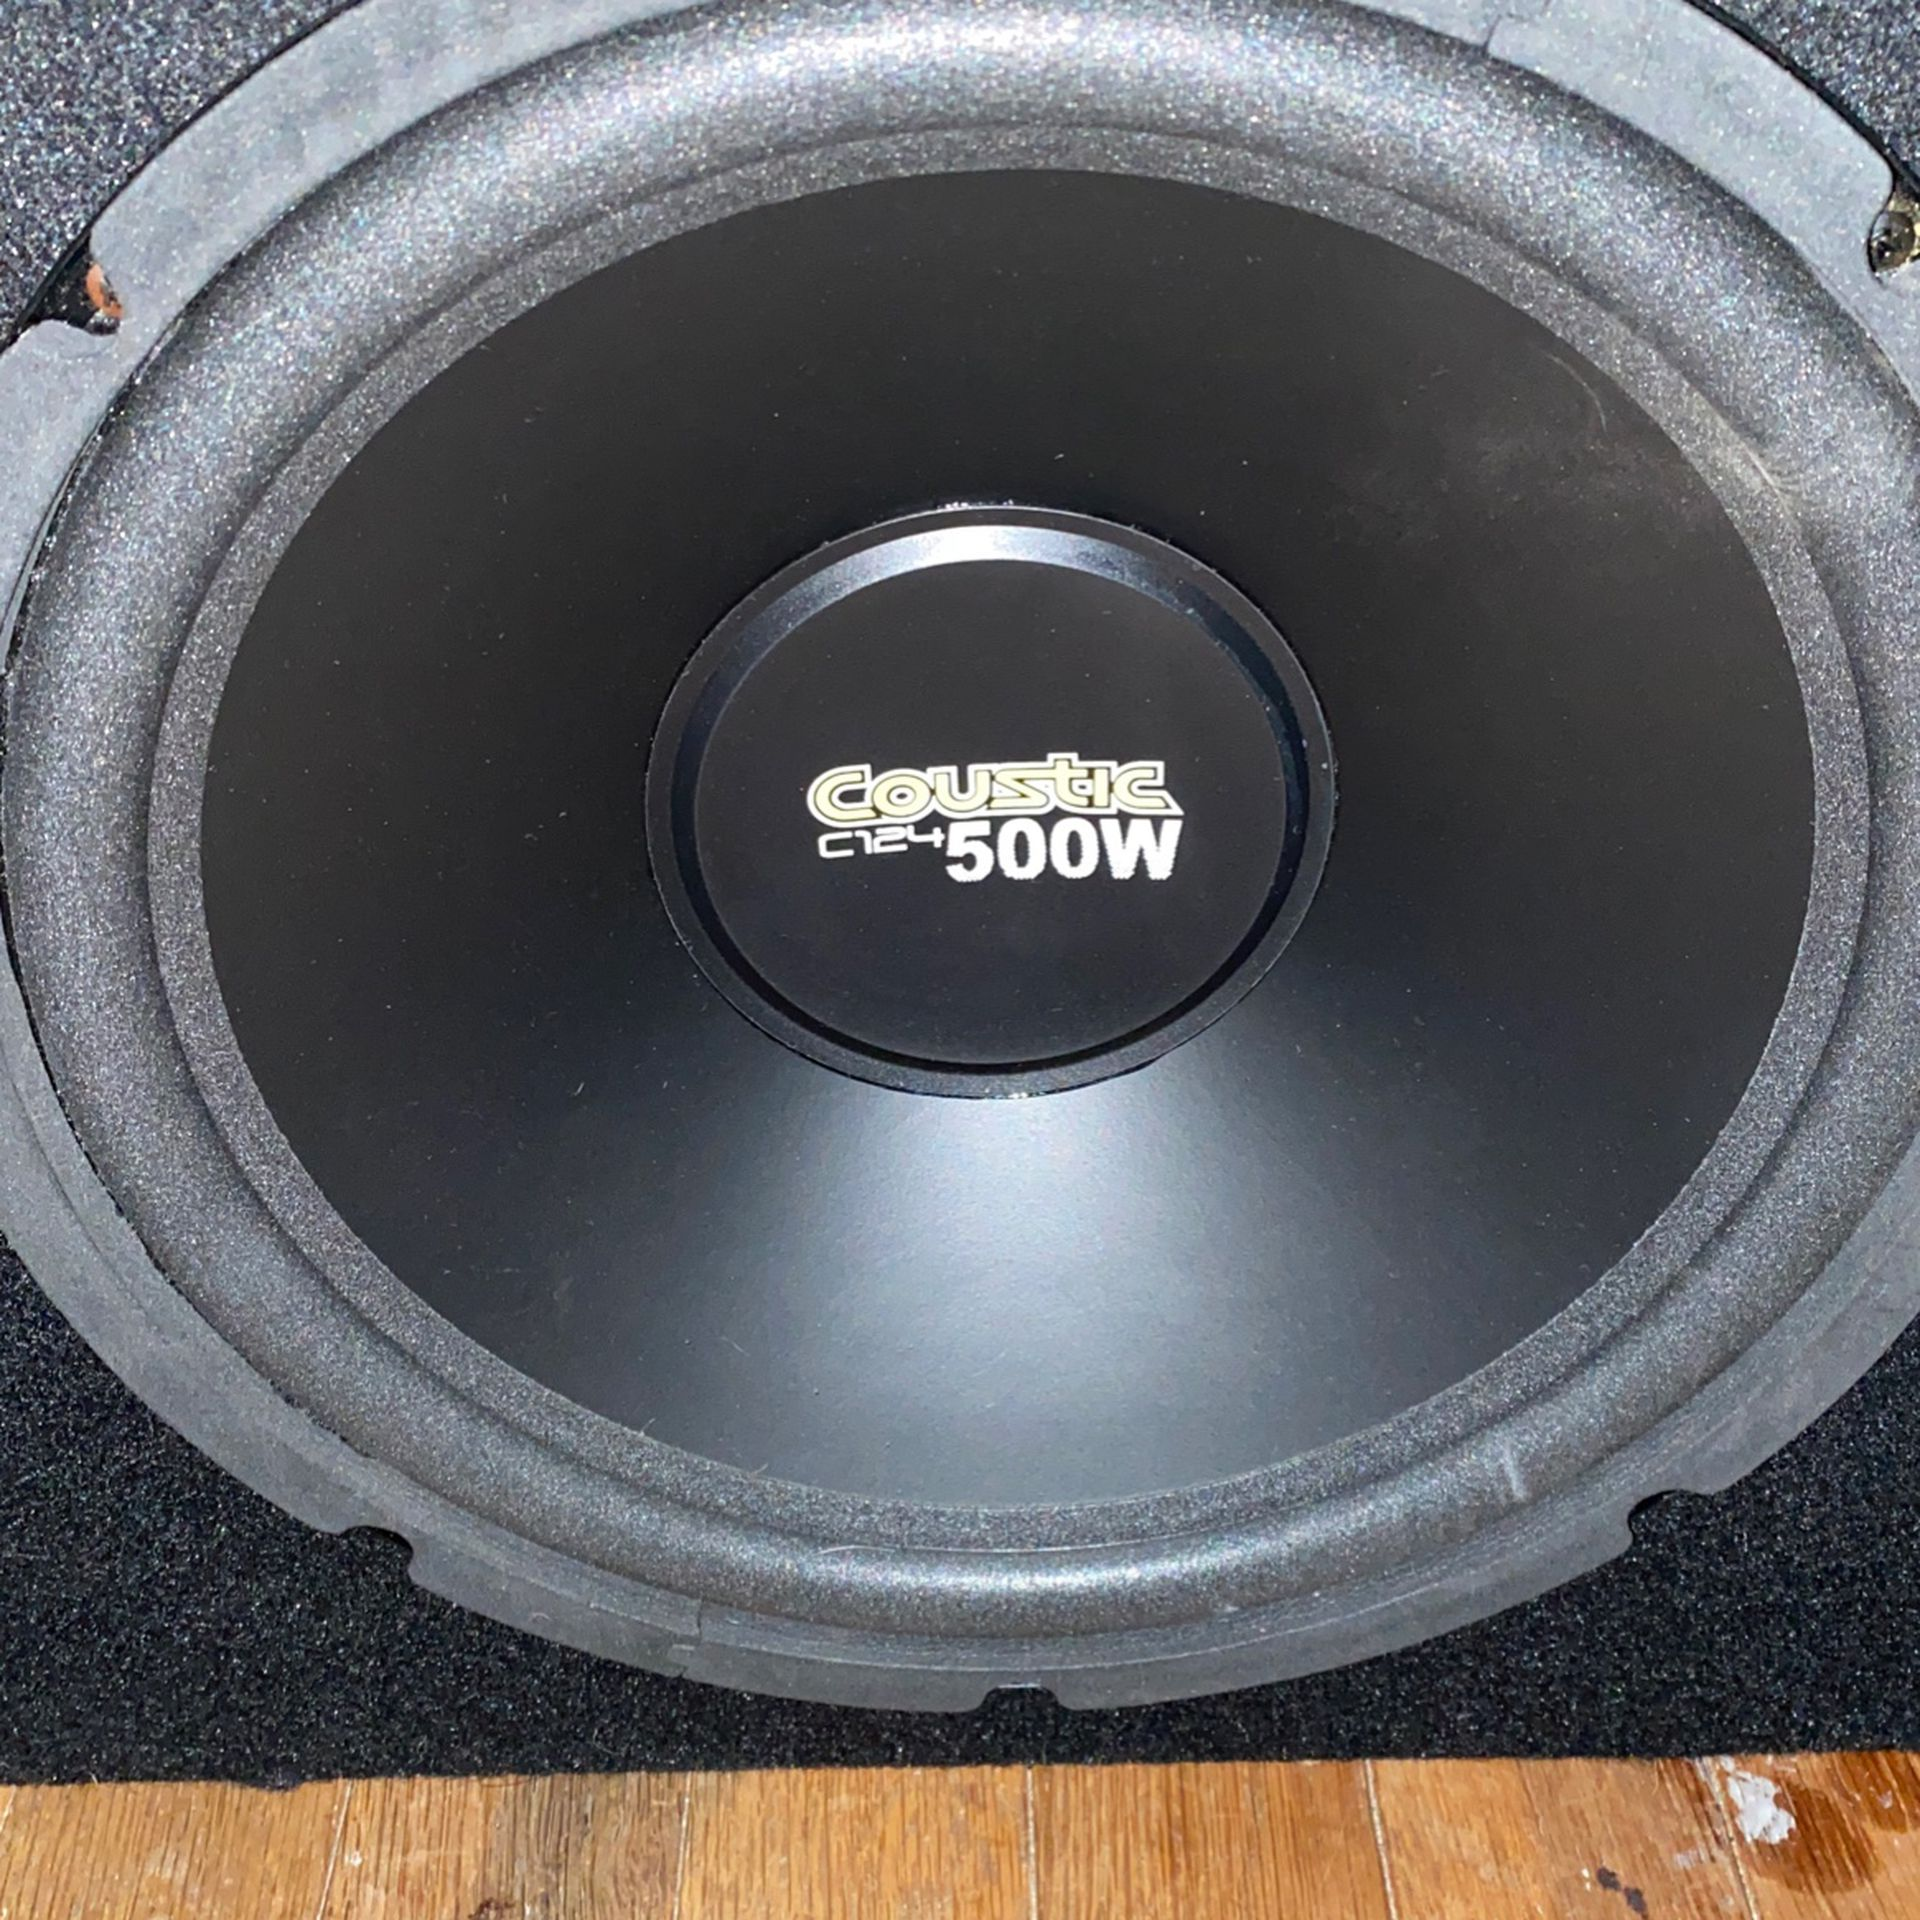 Two 12s Super Sound Box With The Coustic 1000w Monoblock Amplifier